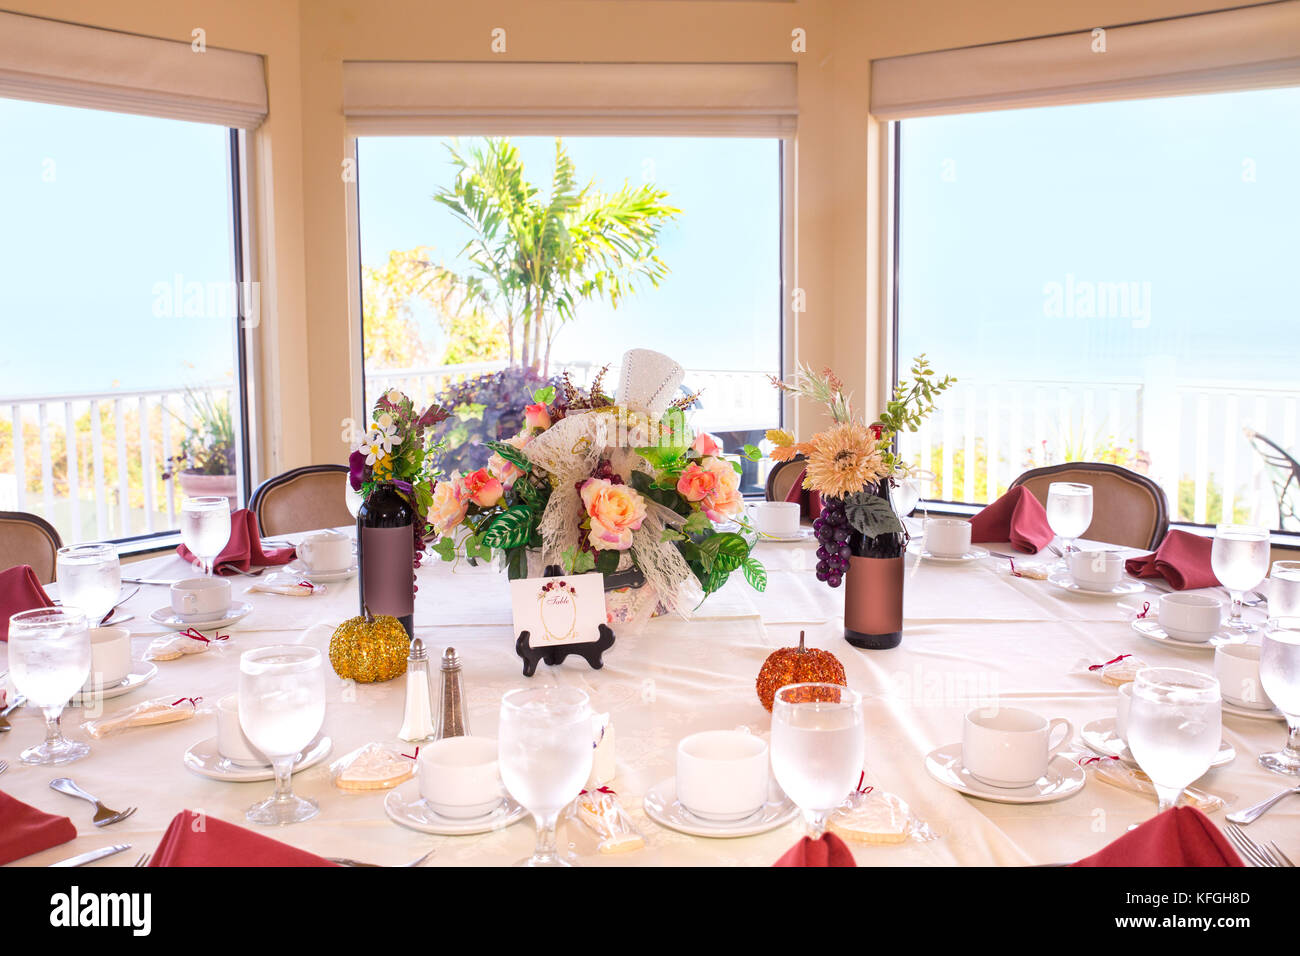 Beautiful restaurant event table setting in front of bright window - Stock Image